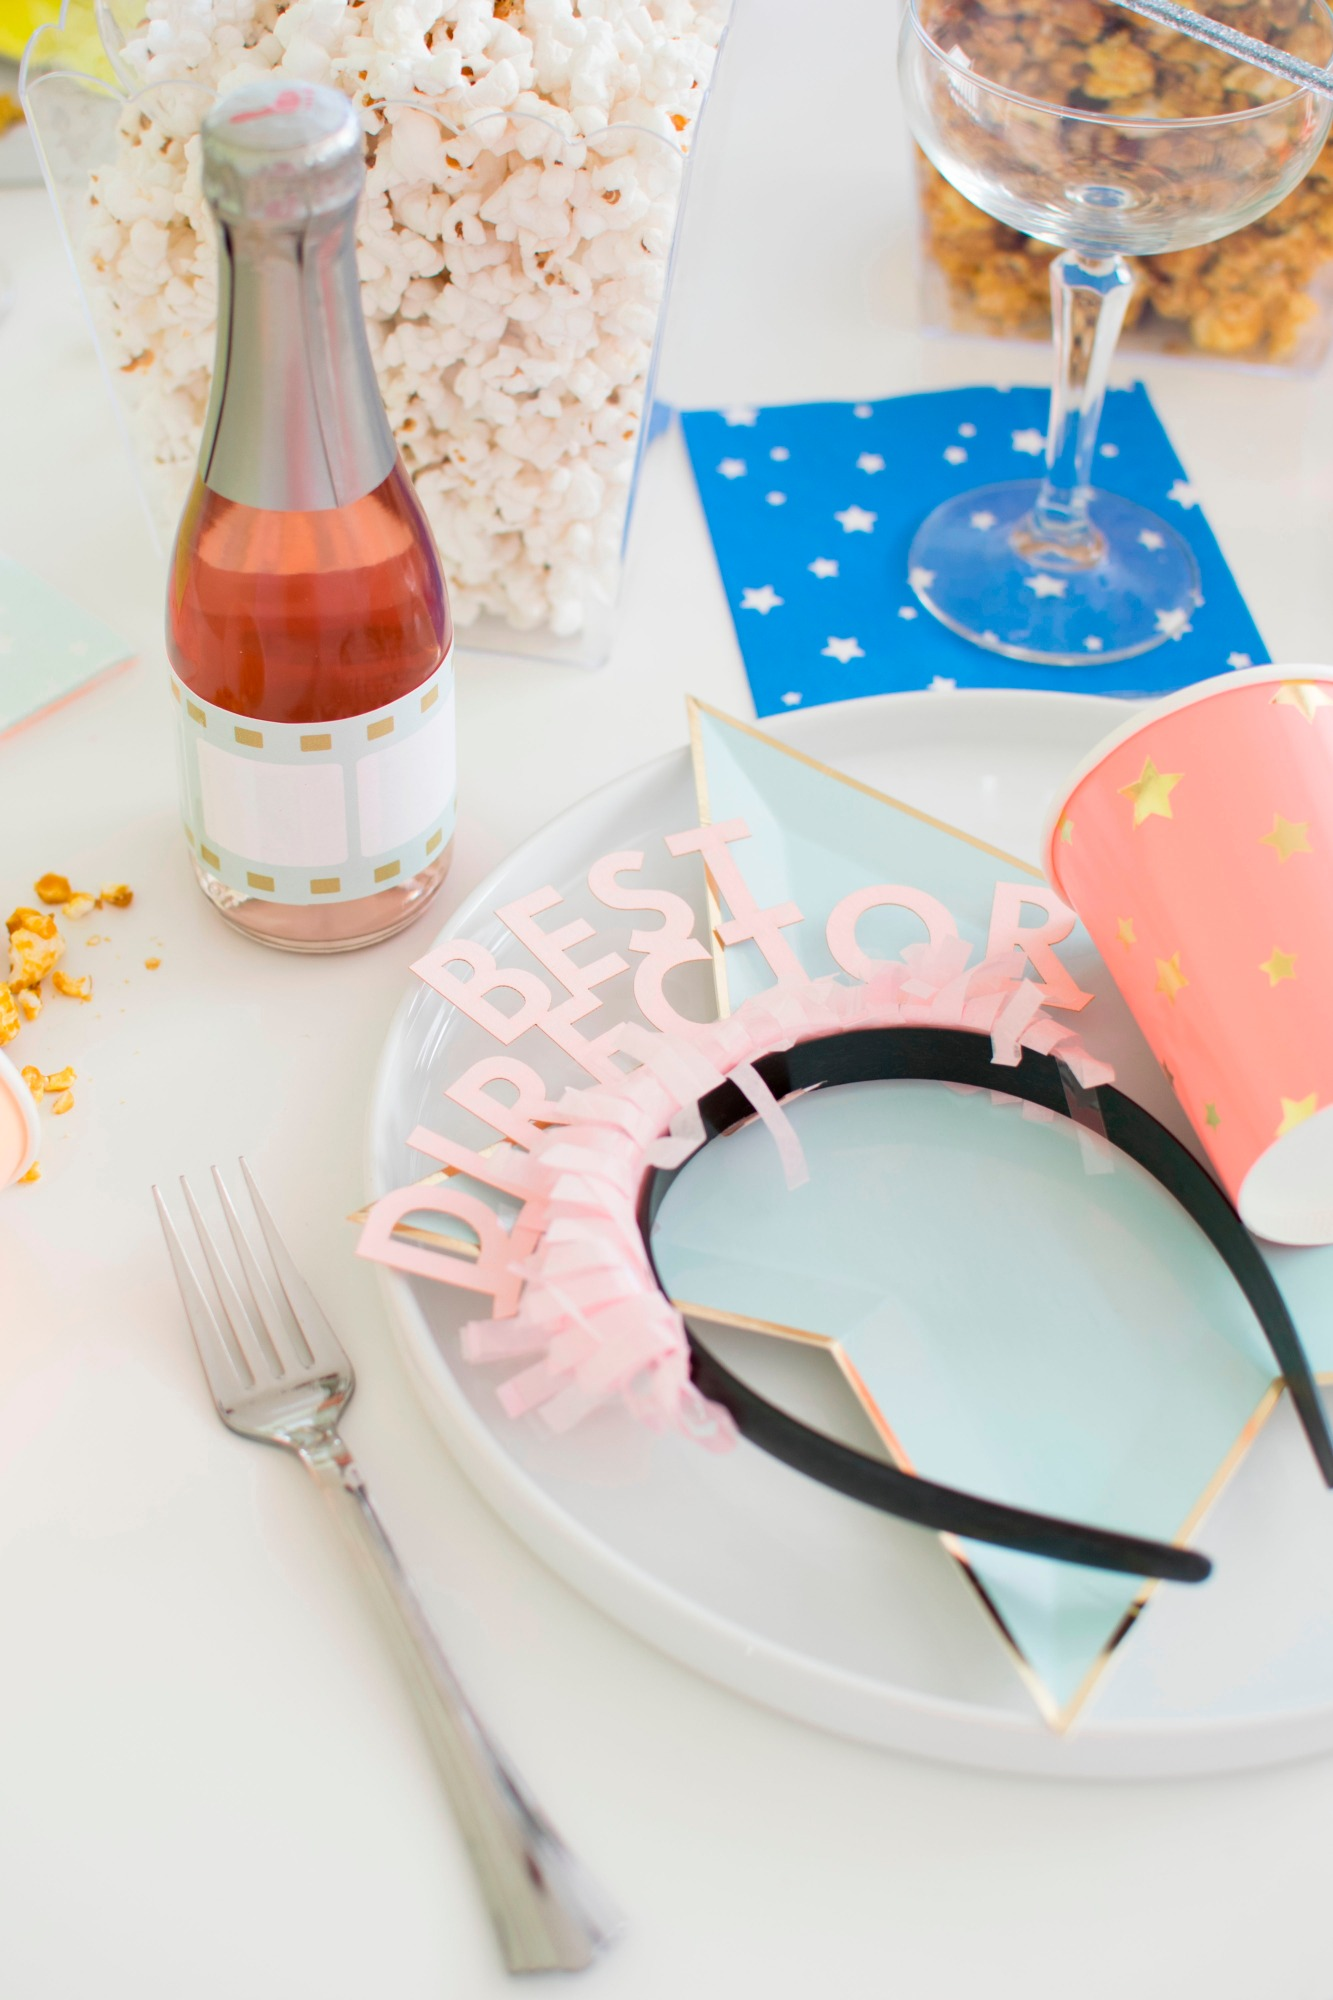 Party Headband & Place Setting | Hollywood Glamour Party Styled by Twinkle Twinkle Little Party | Black Twine